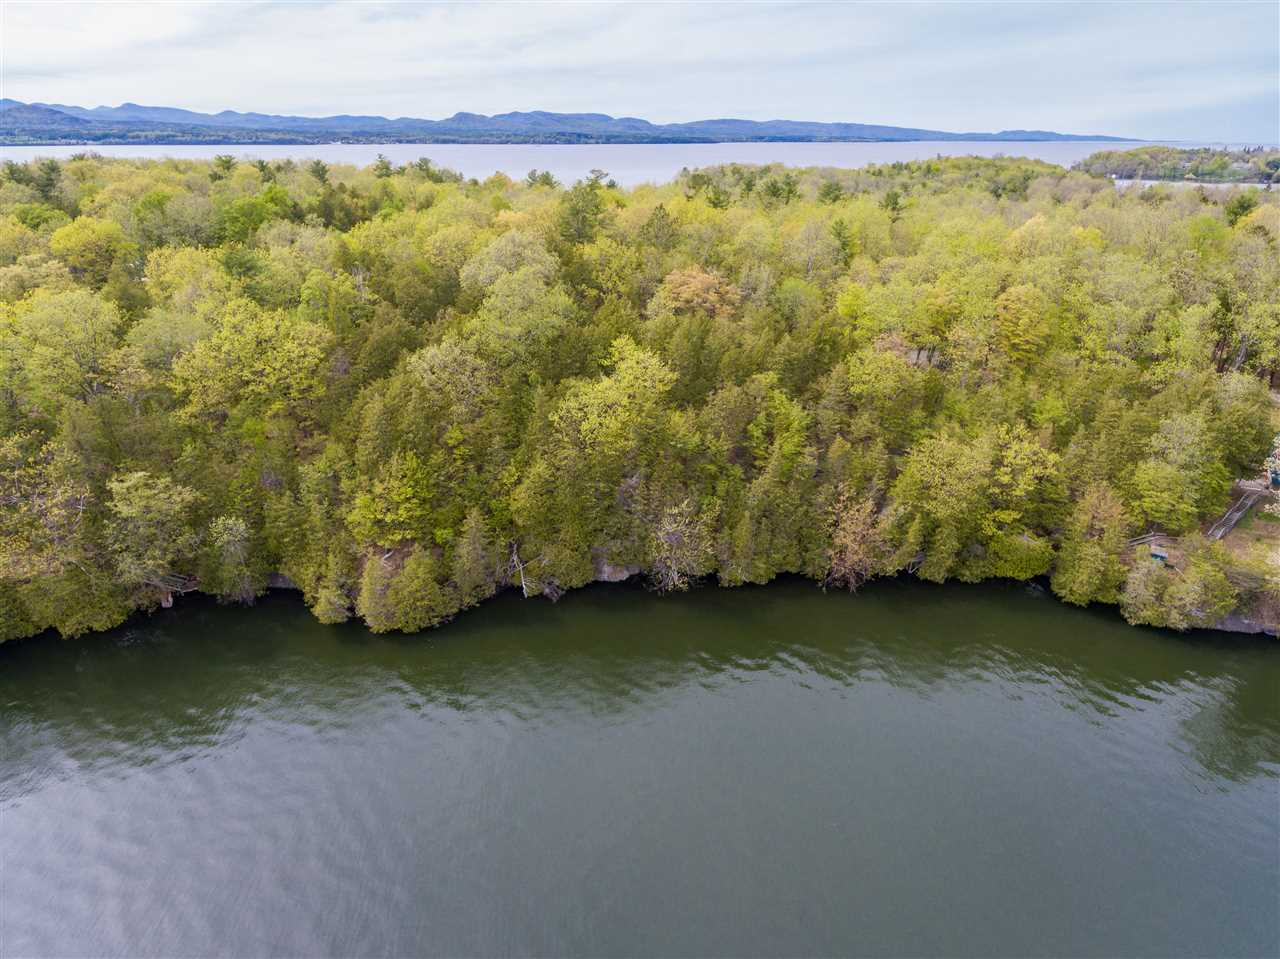 Beautiful Southeast facing parcel with 287 feet of lakeshore and lake access.  Excellent opportunity to build your year round dream home on Lake Champlain.  1970s camp on property with existing detached garage. Dave Marshall from Civil Engineering Associates did the site work and it's approved for 2 bedroom septic.